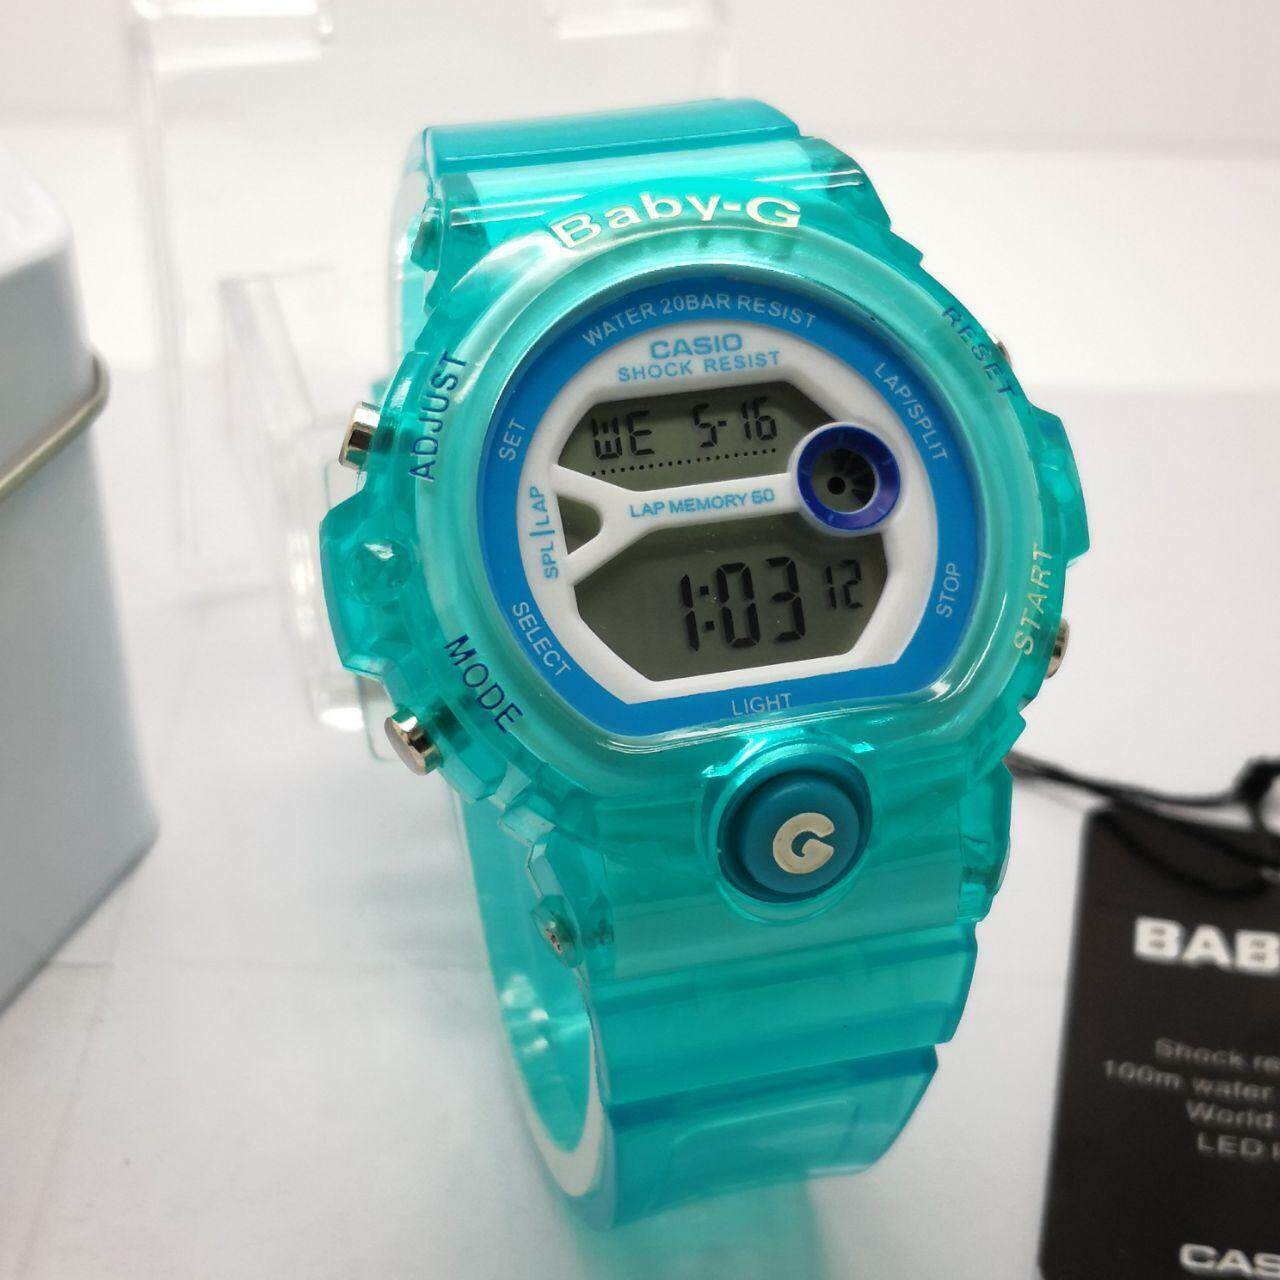 e7bfc68fd461 Casio Baby-G Products for the Best Price in Malaysia